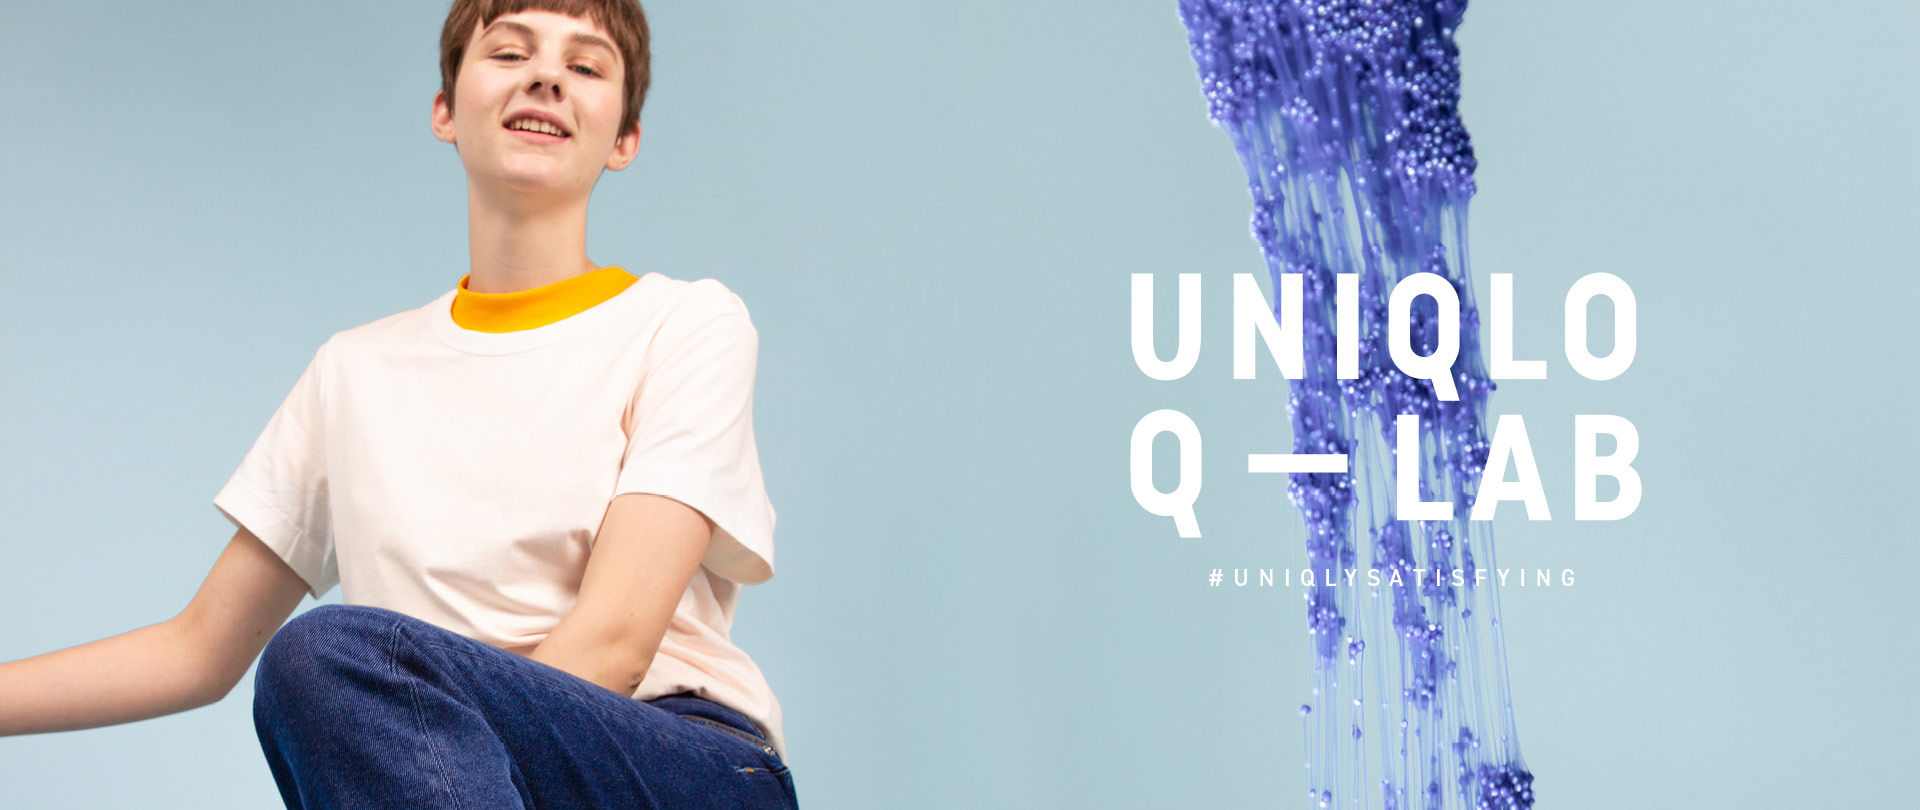 #UNIQLYSATISFYING CAMPAIGN